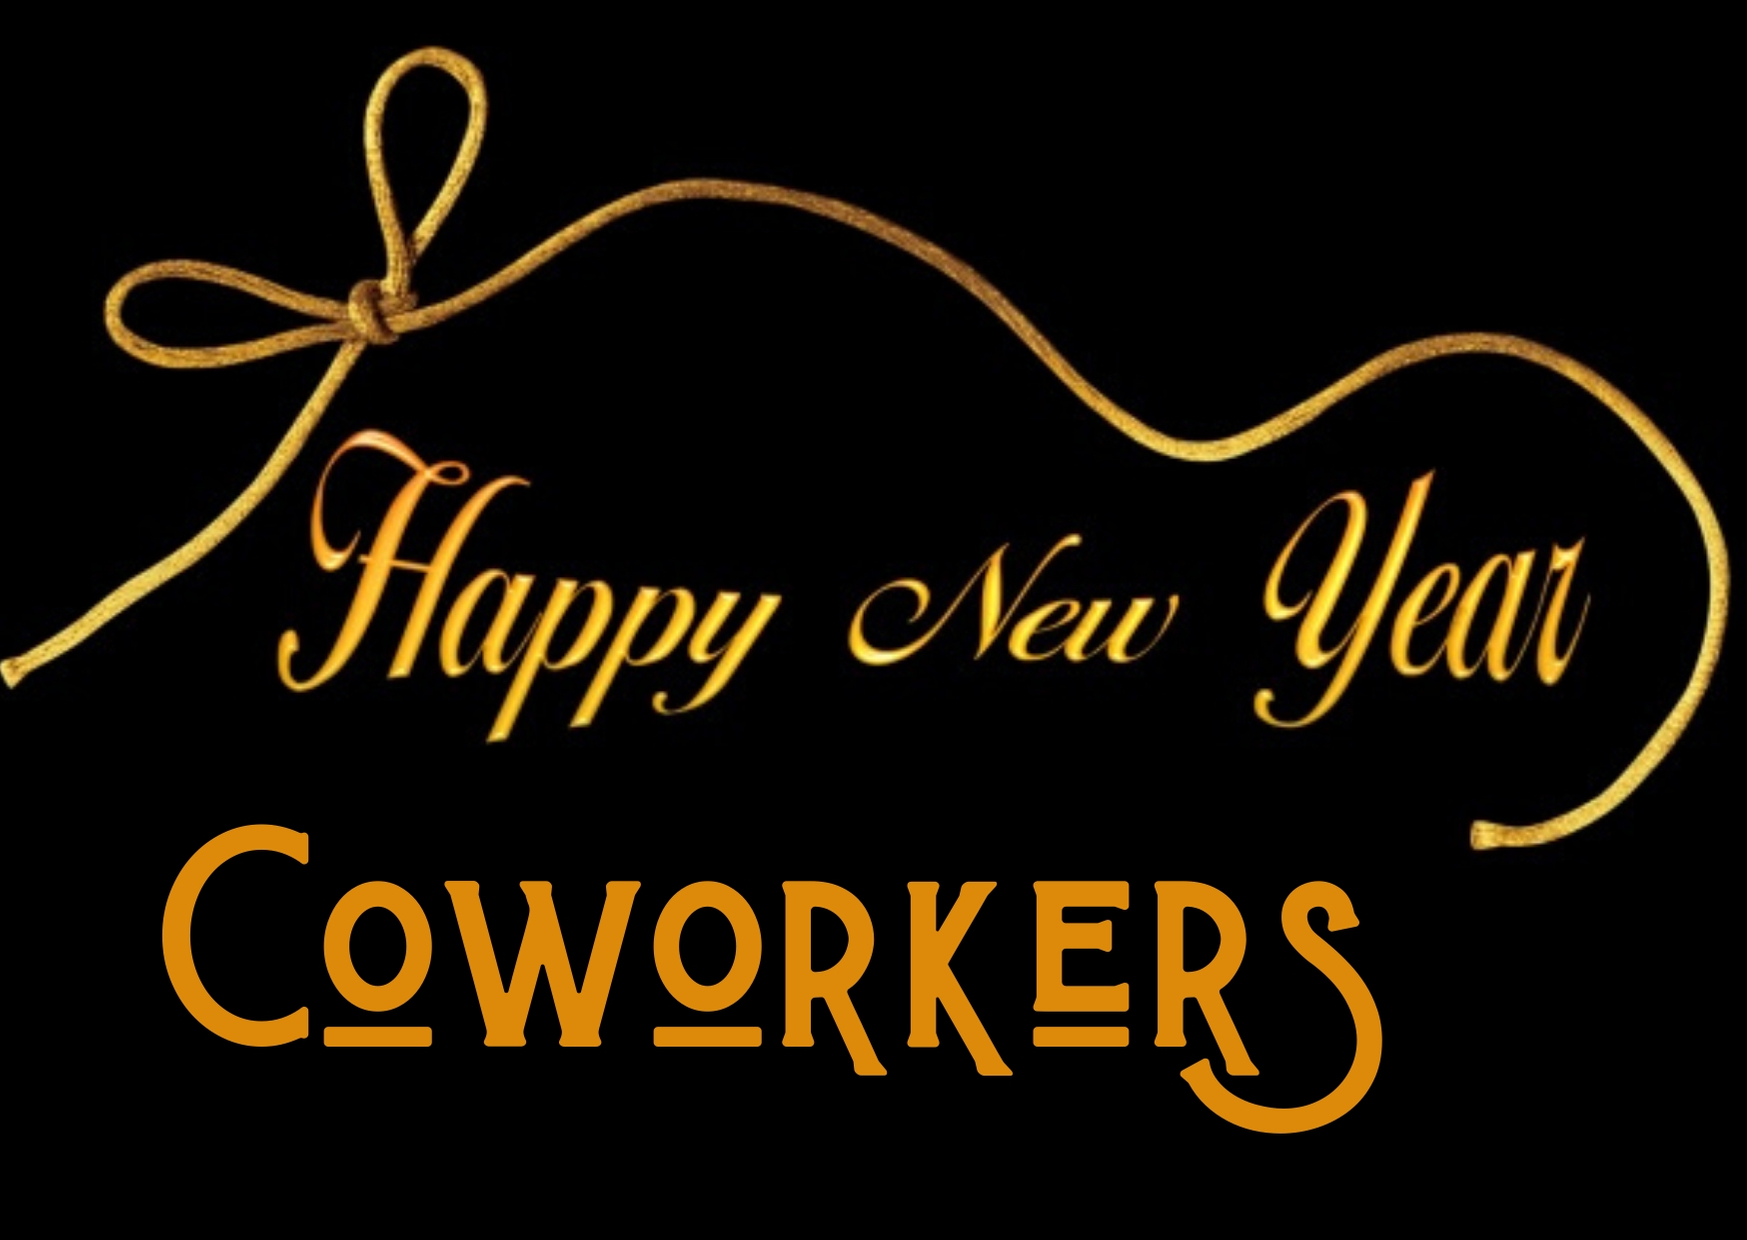 Happy New Year 2020 Wishes For Coworkers